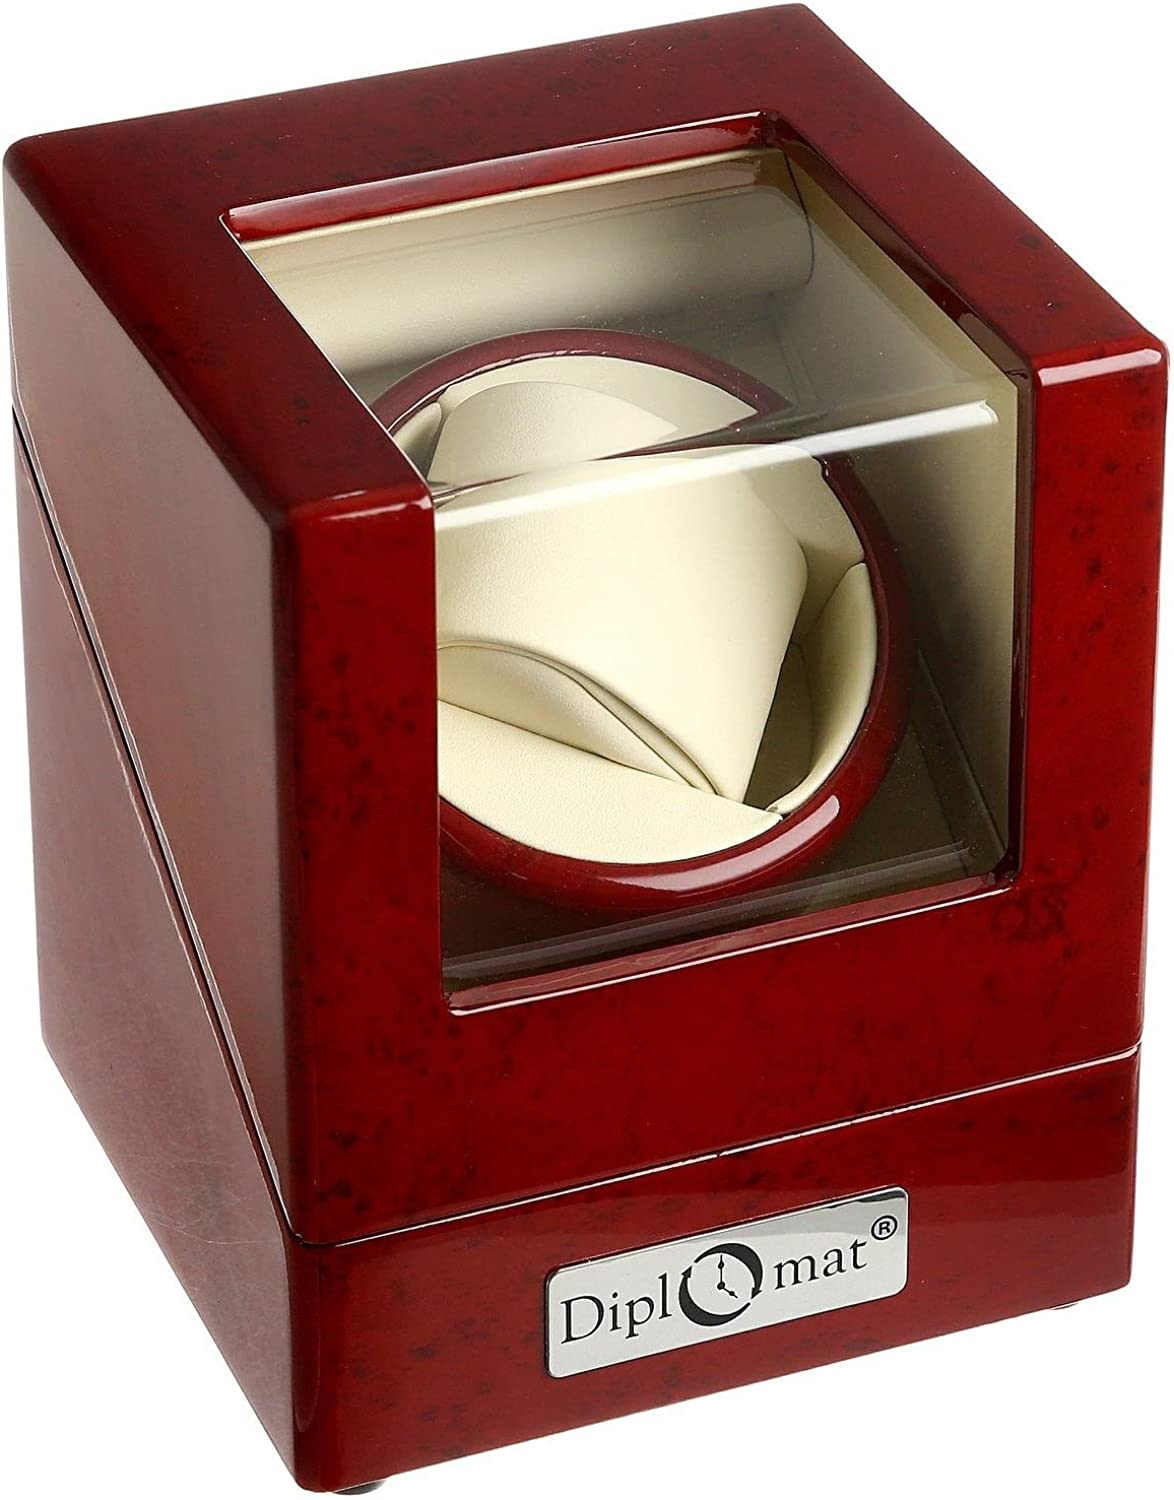 Max 75% OFF Diplomat 31-405 Cherry Wood Watch Single Winder Dealing full price reduction